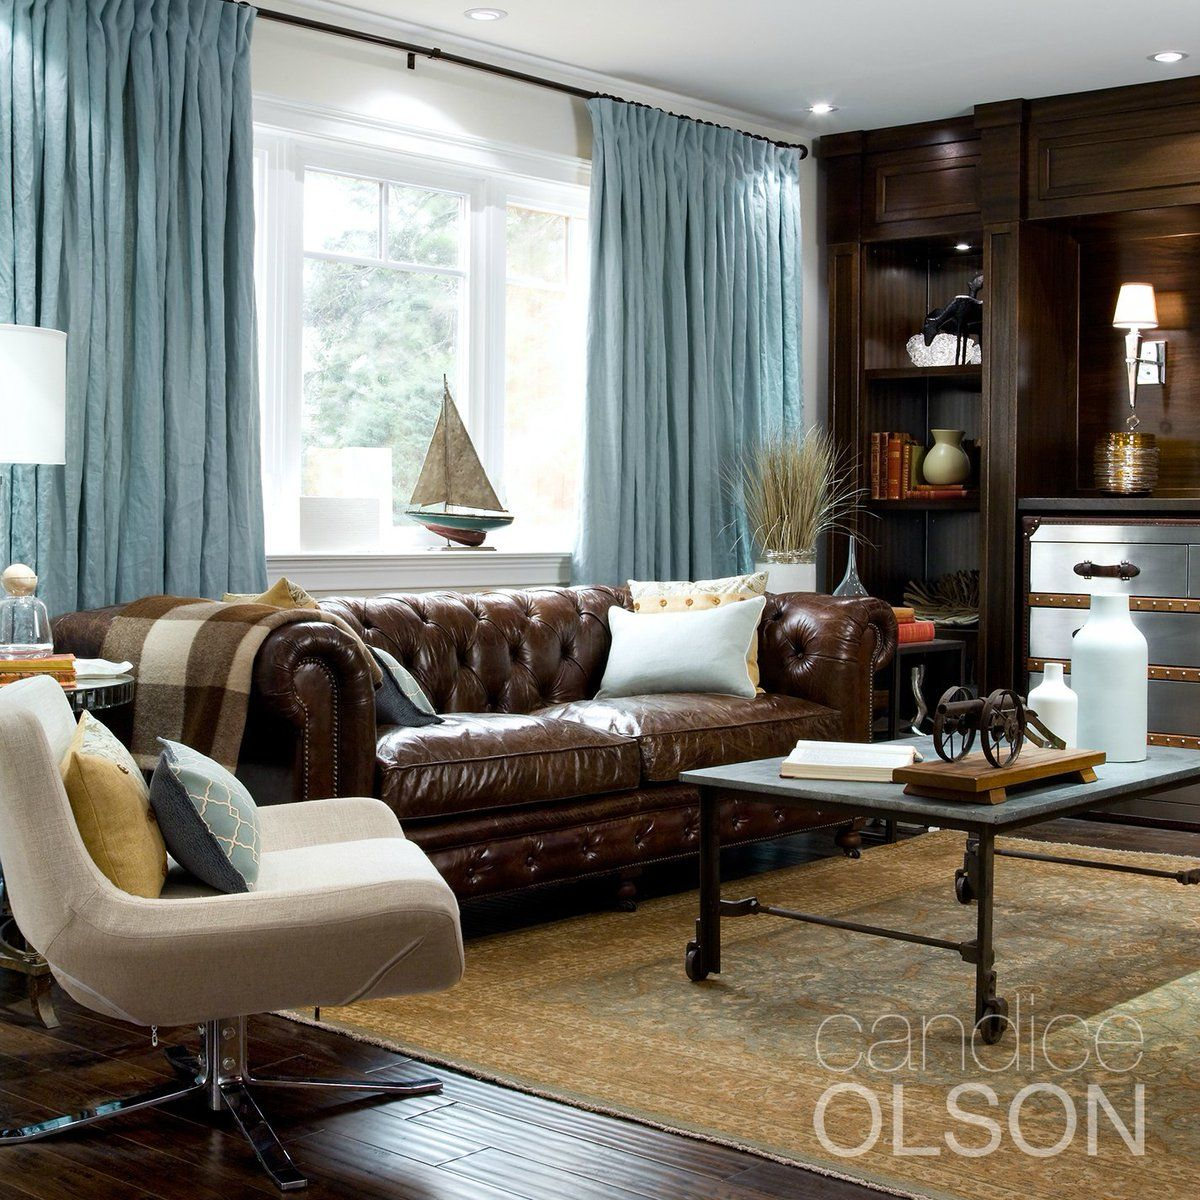 Candice Olson Living Room Decorating Ideas: Candice Olson (@candiceolson_)